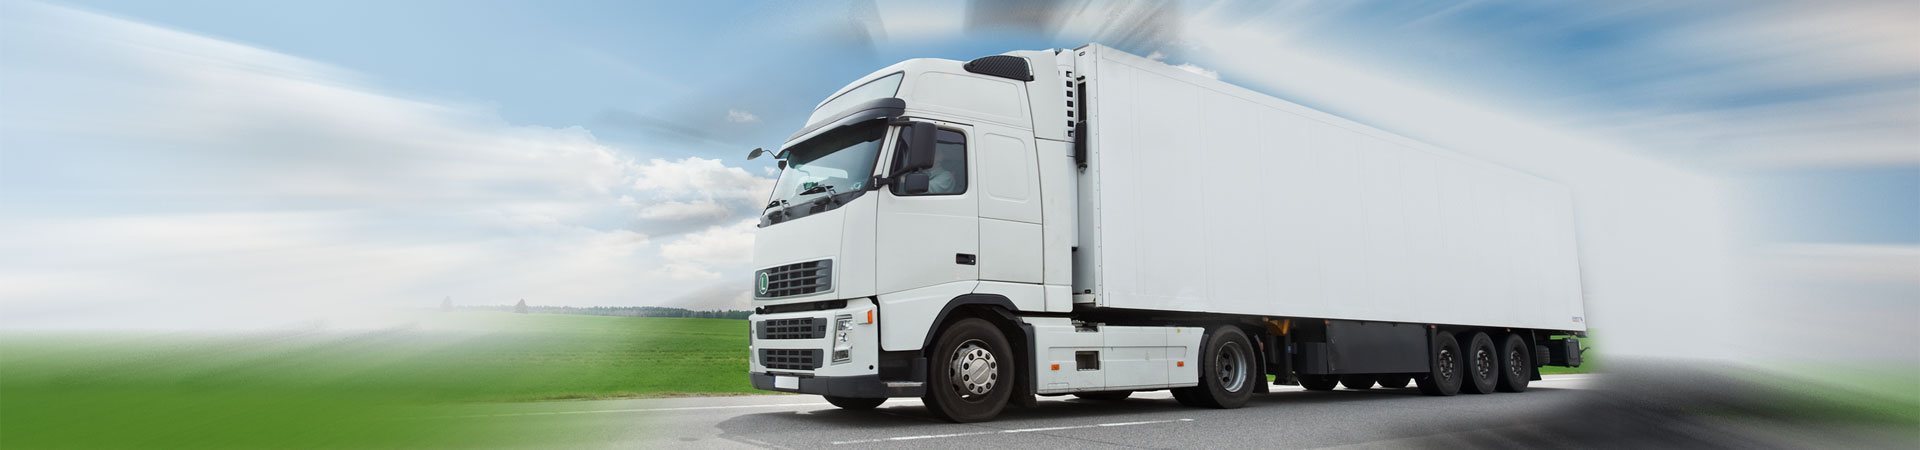 KTM_Slider_Home_LKW_1920x450_01